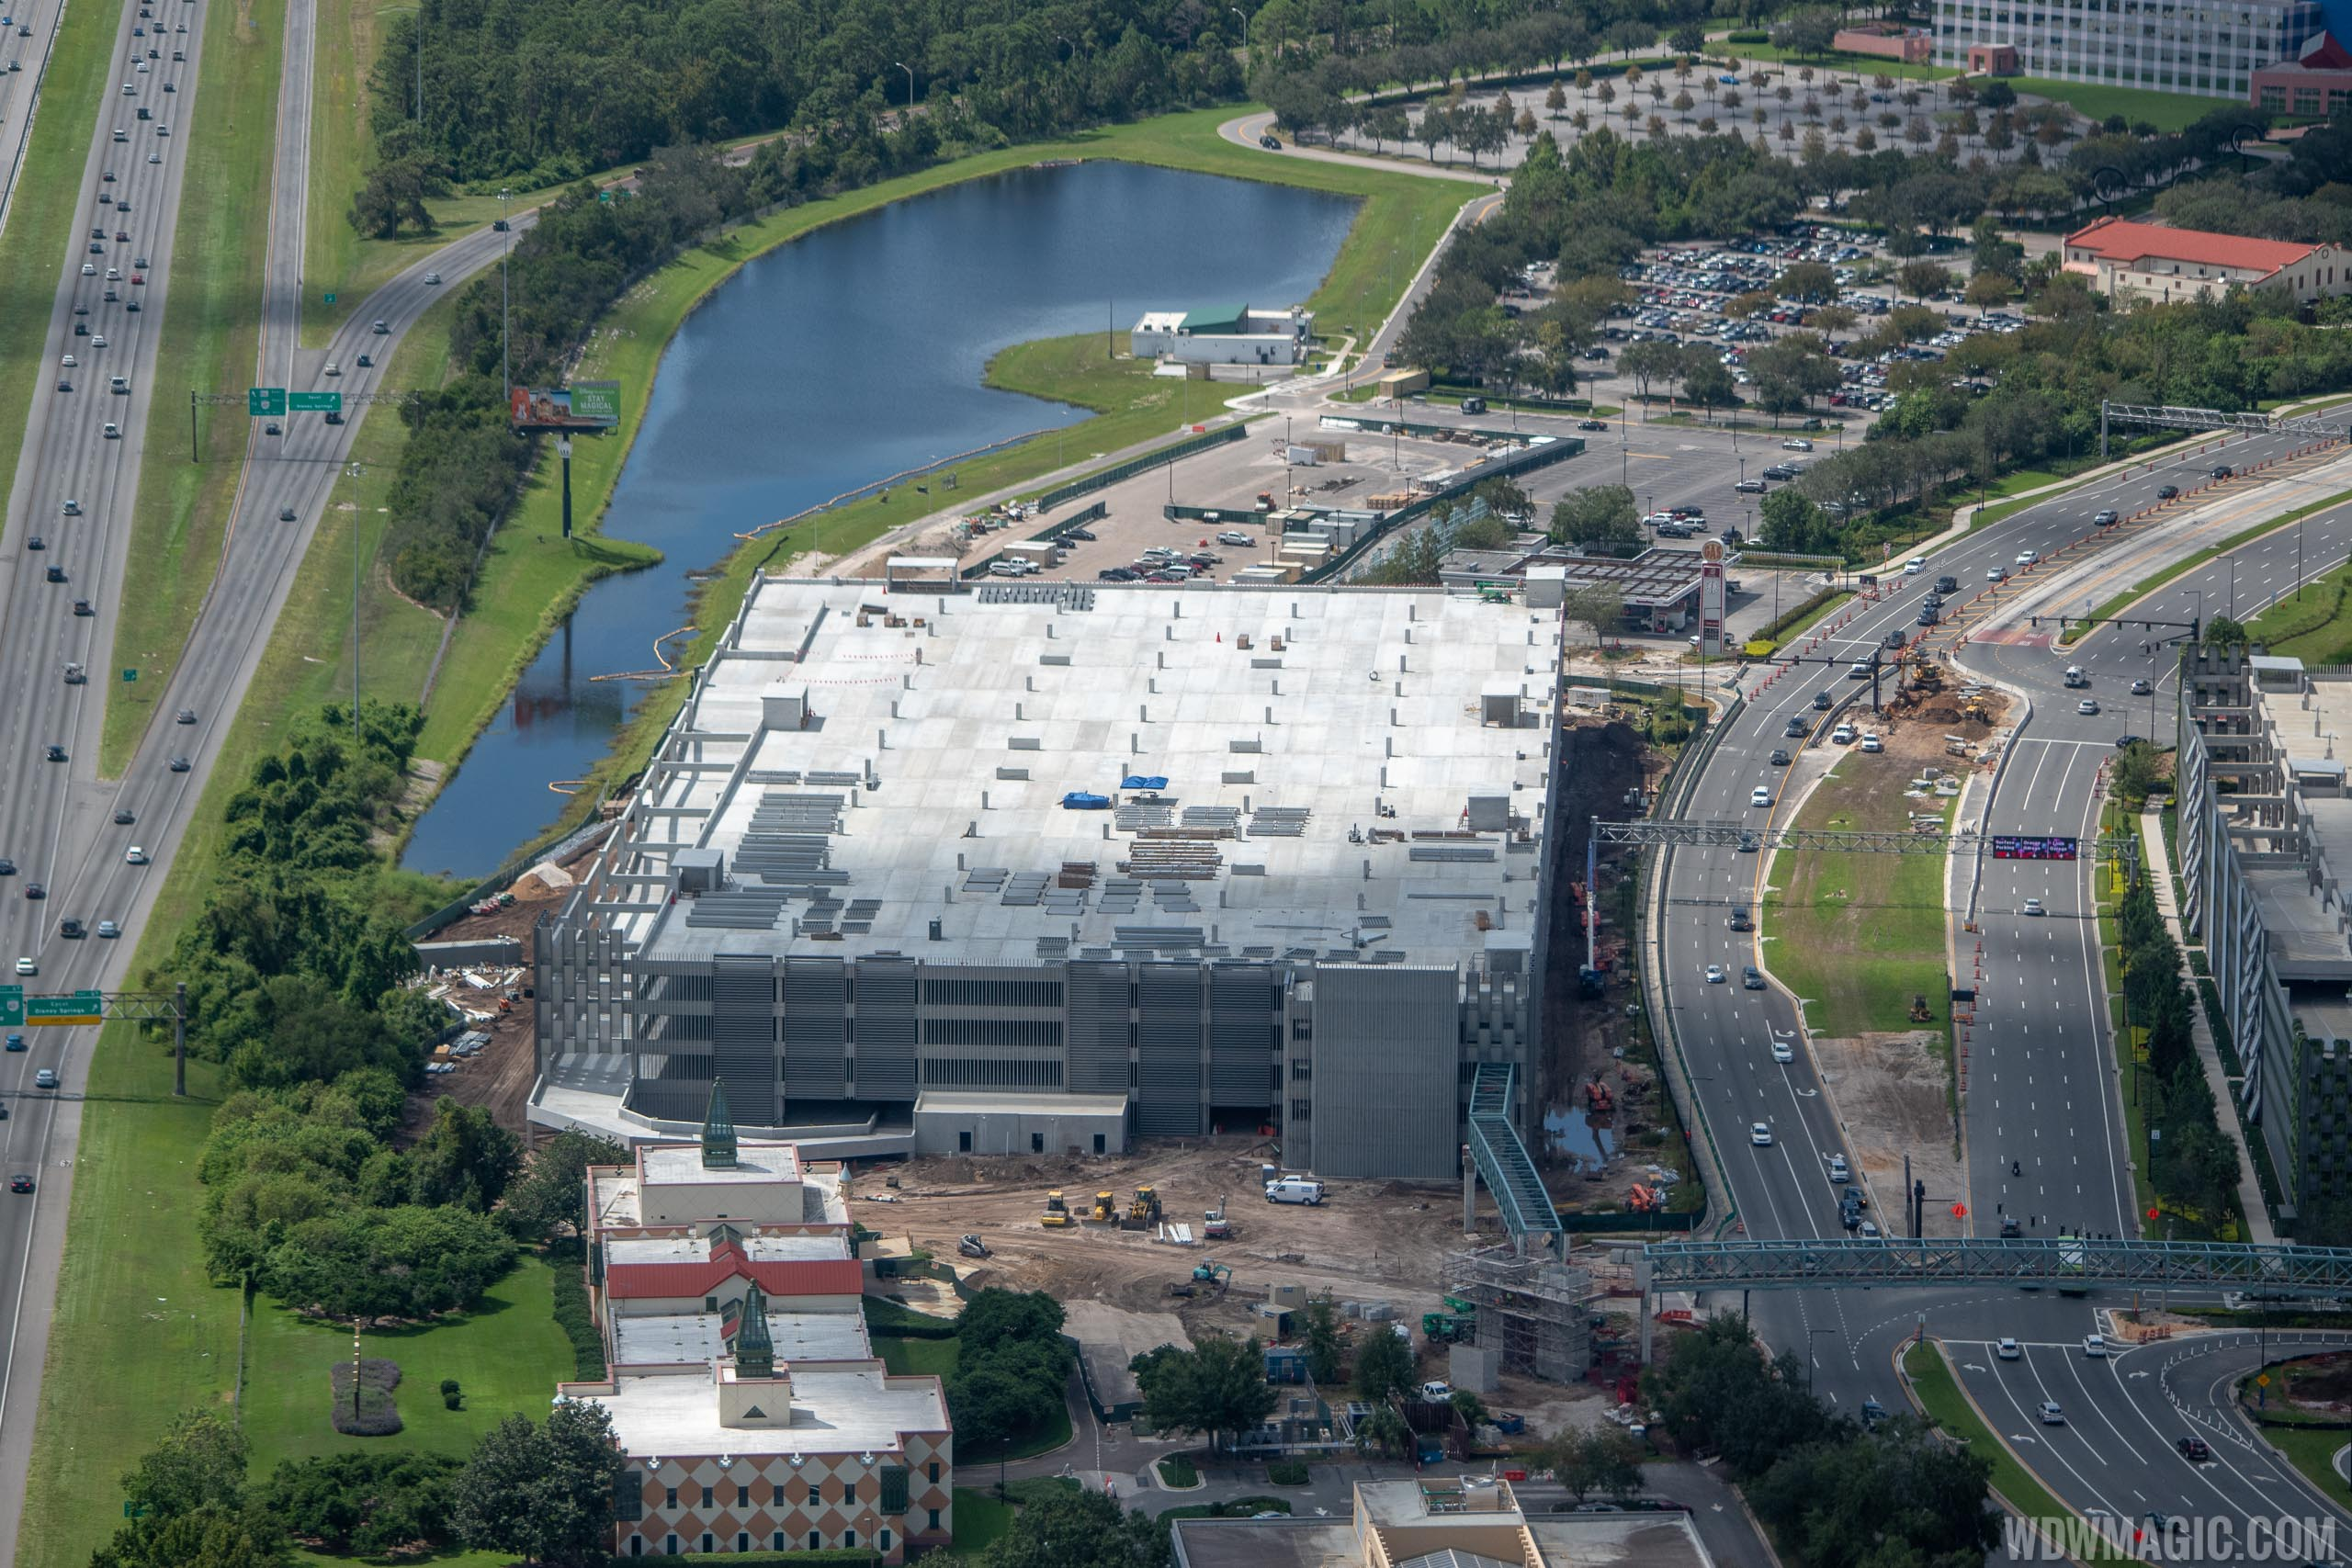 Disney Springs third parking lot construction - September 2018